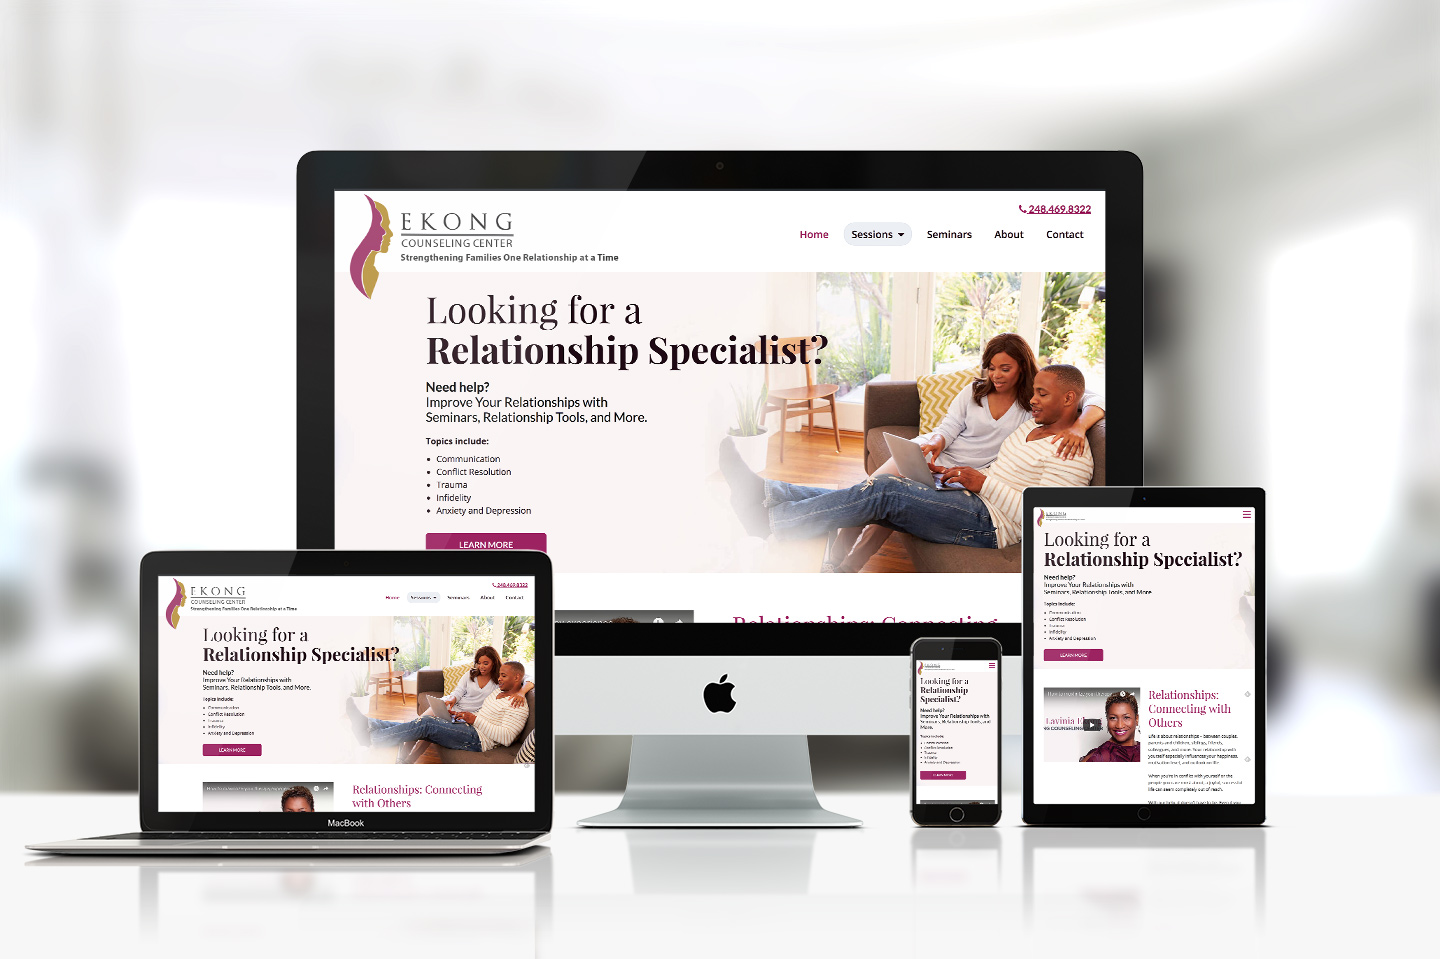 Ekong Counseling Center Responsive Website Design